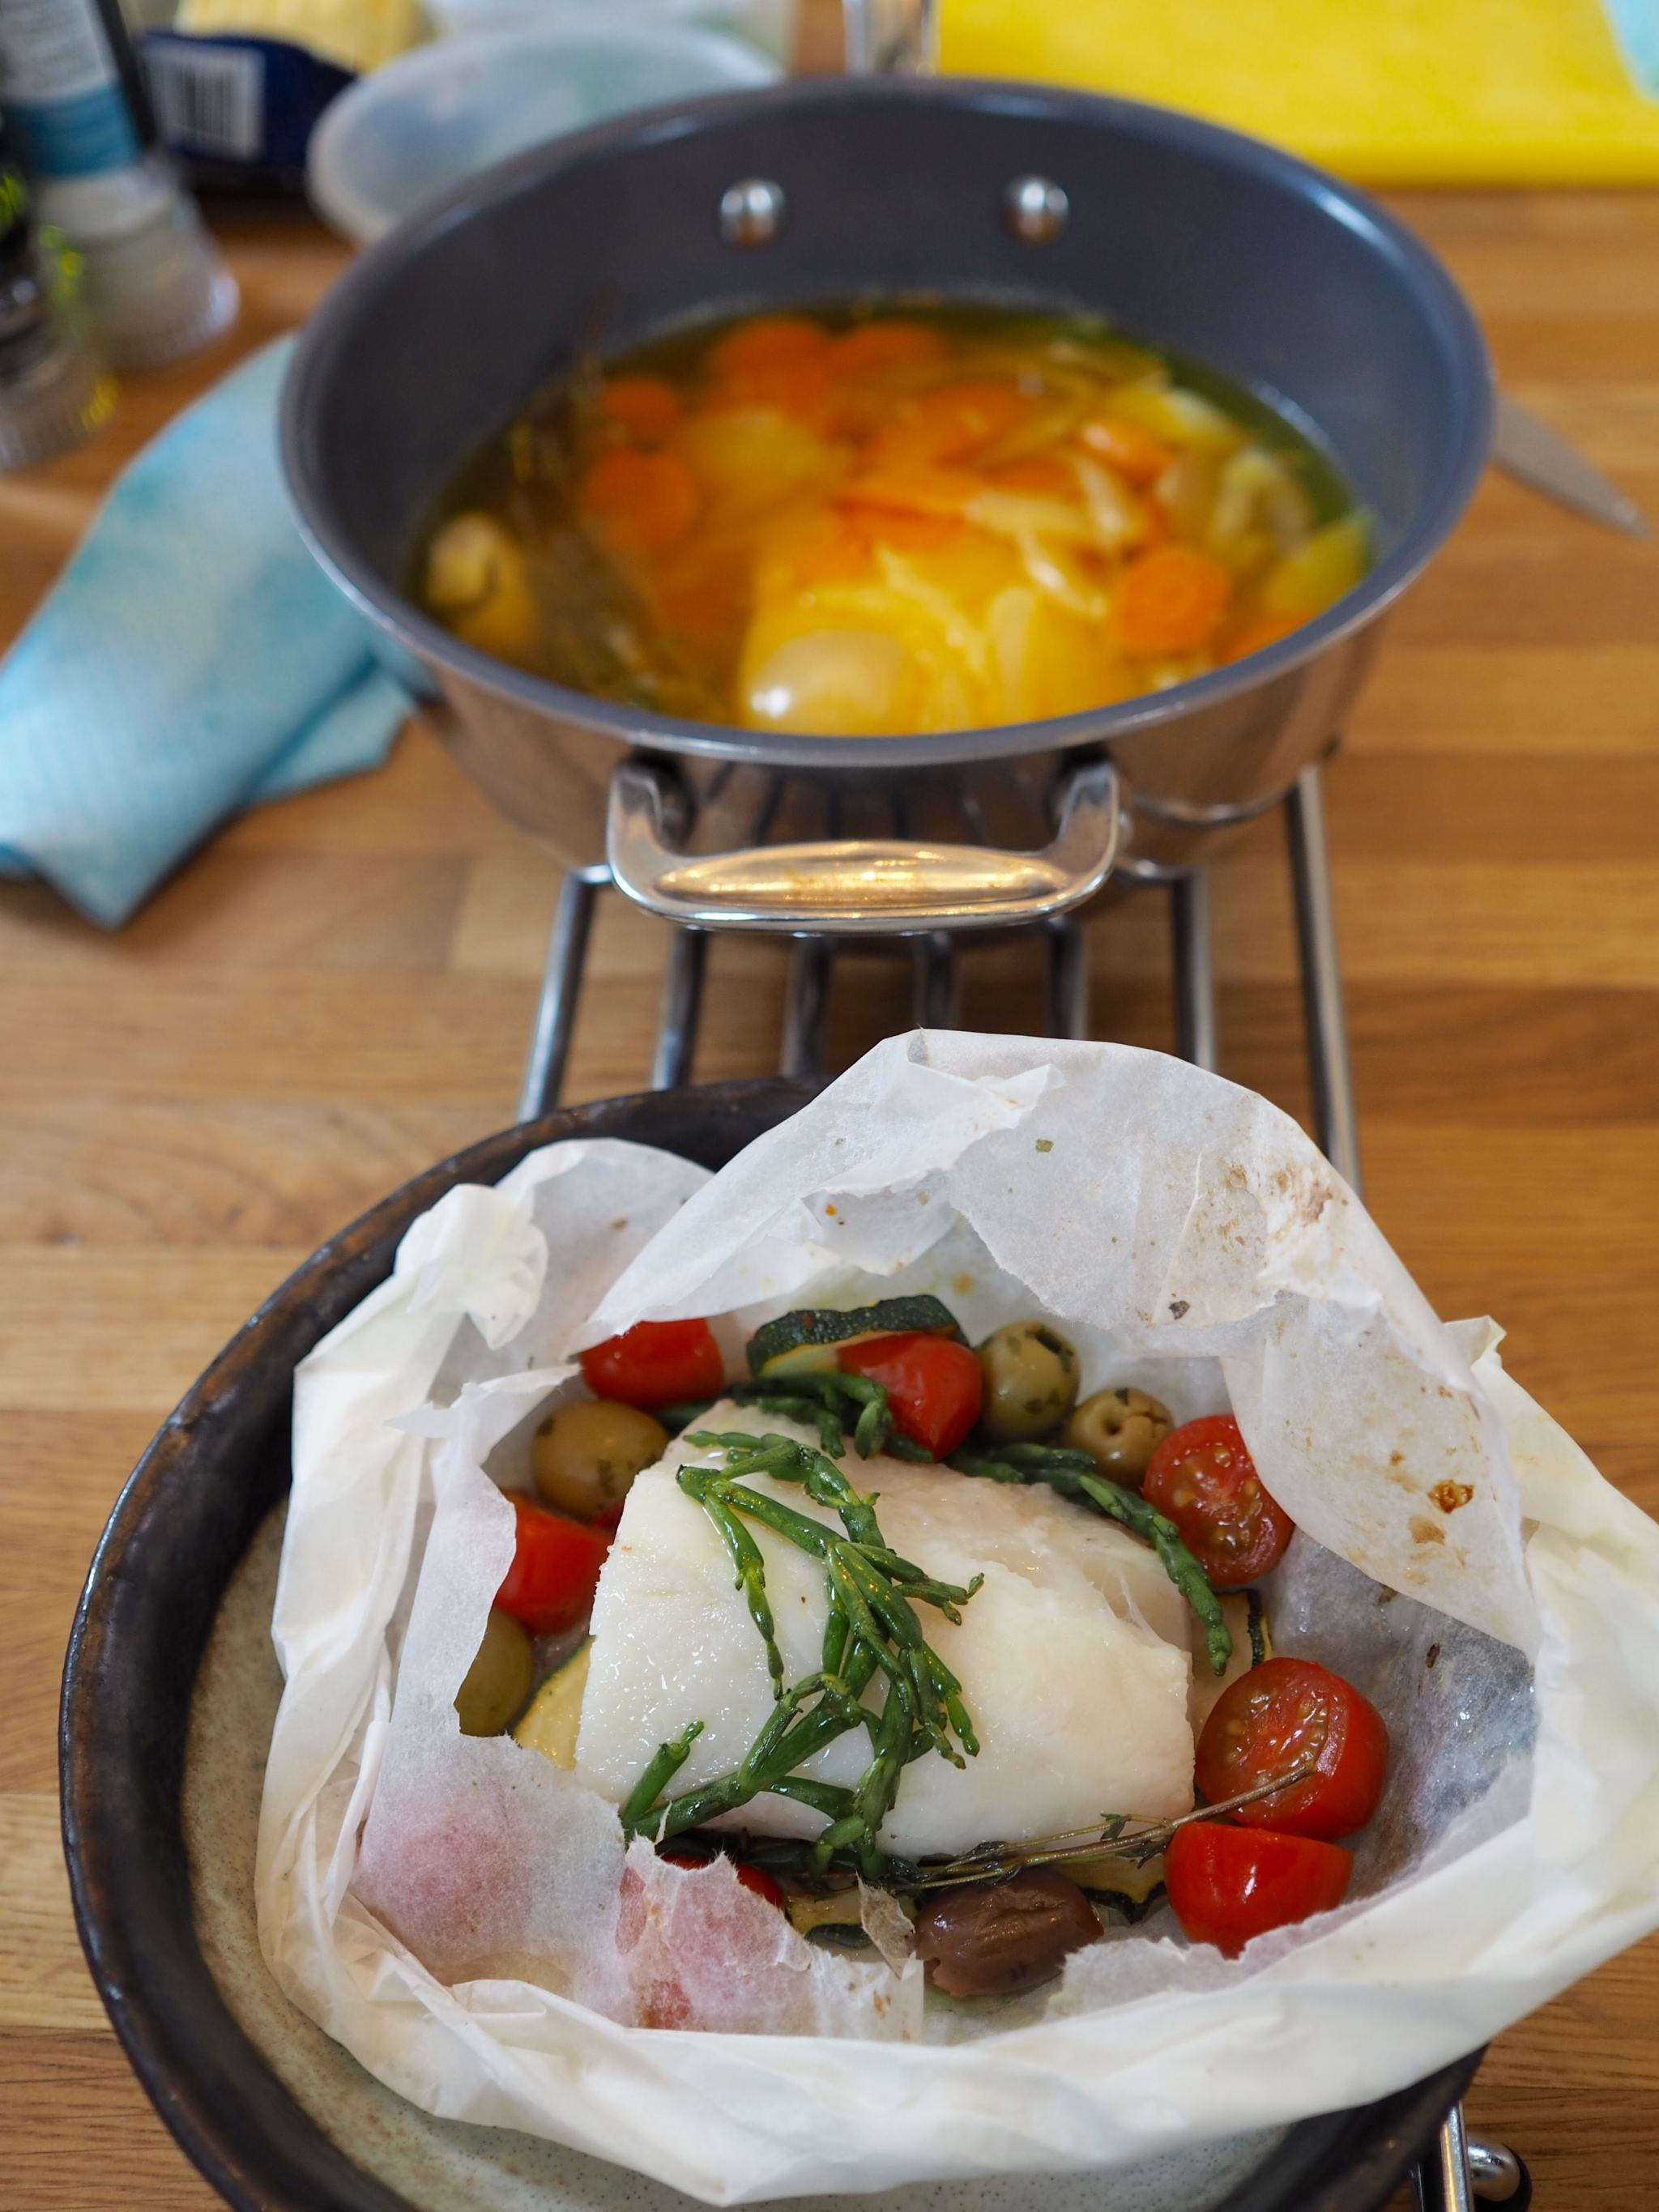 Chelsea Iceland School of fish cooking school neil nugent sea bass